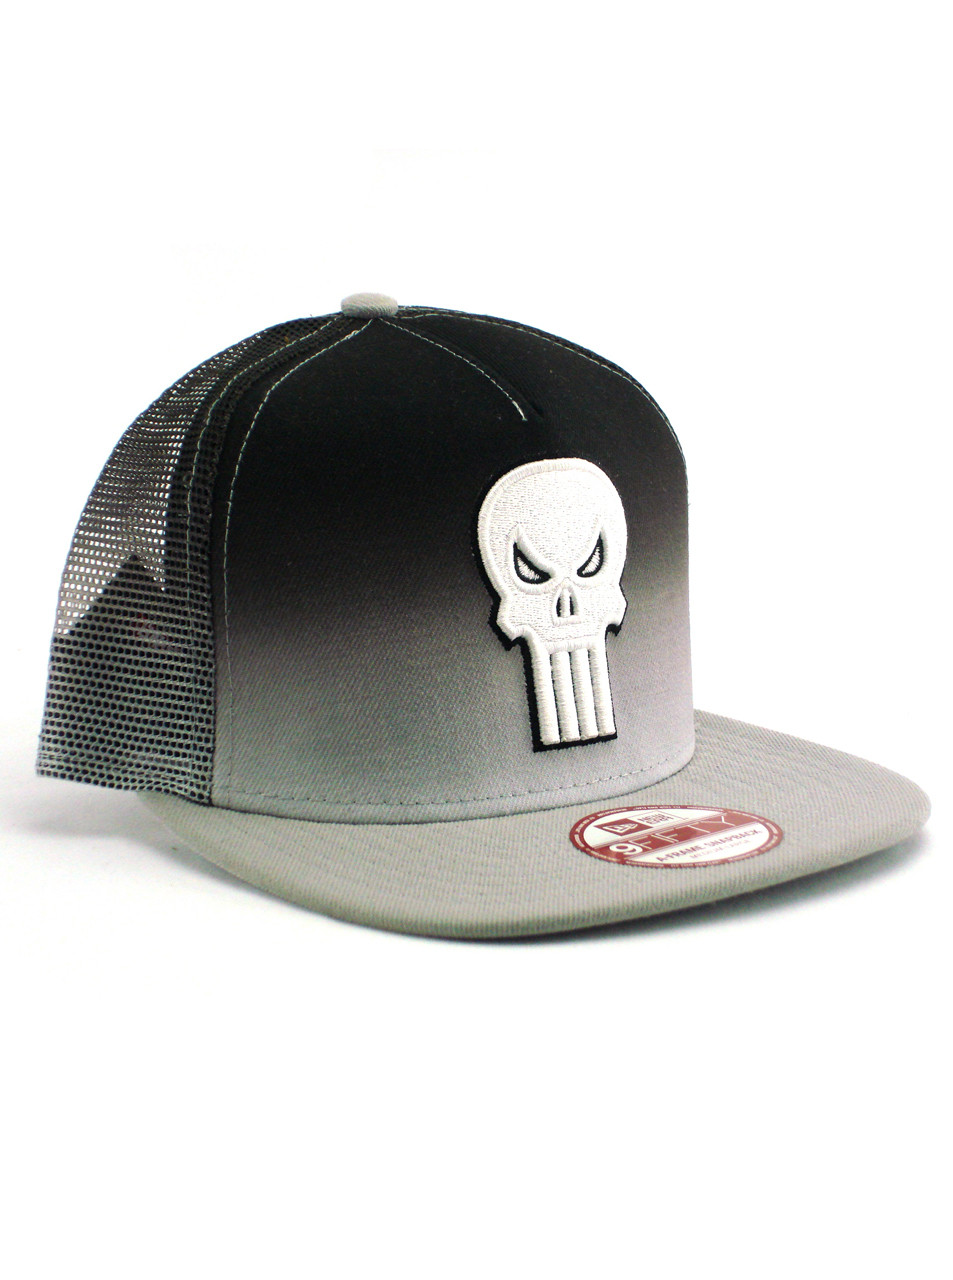 New Era Punisher Color-Fade 9fifty A-Frame Mesh Snapback | Boondock ...